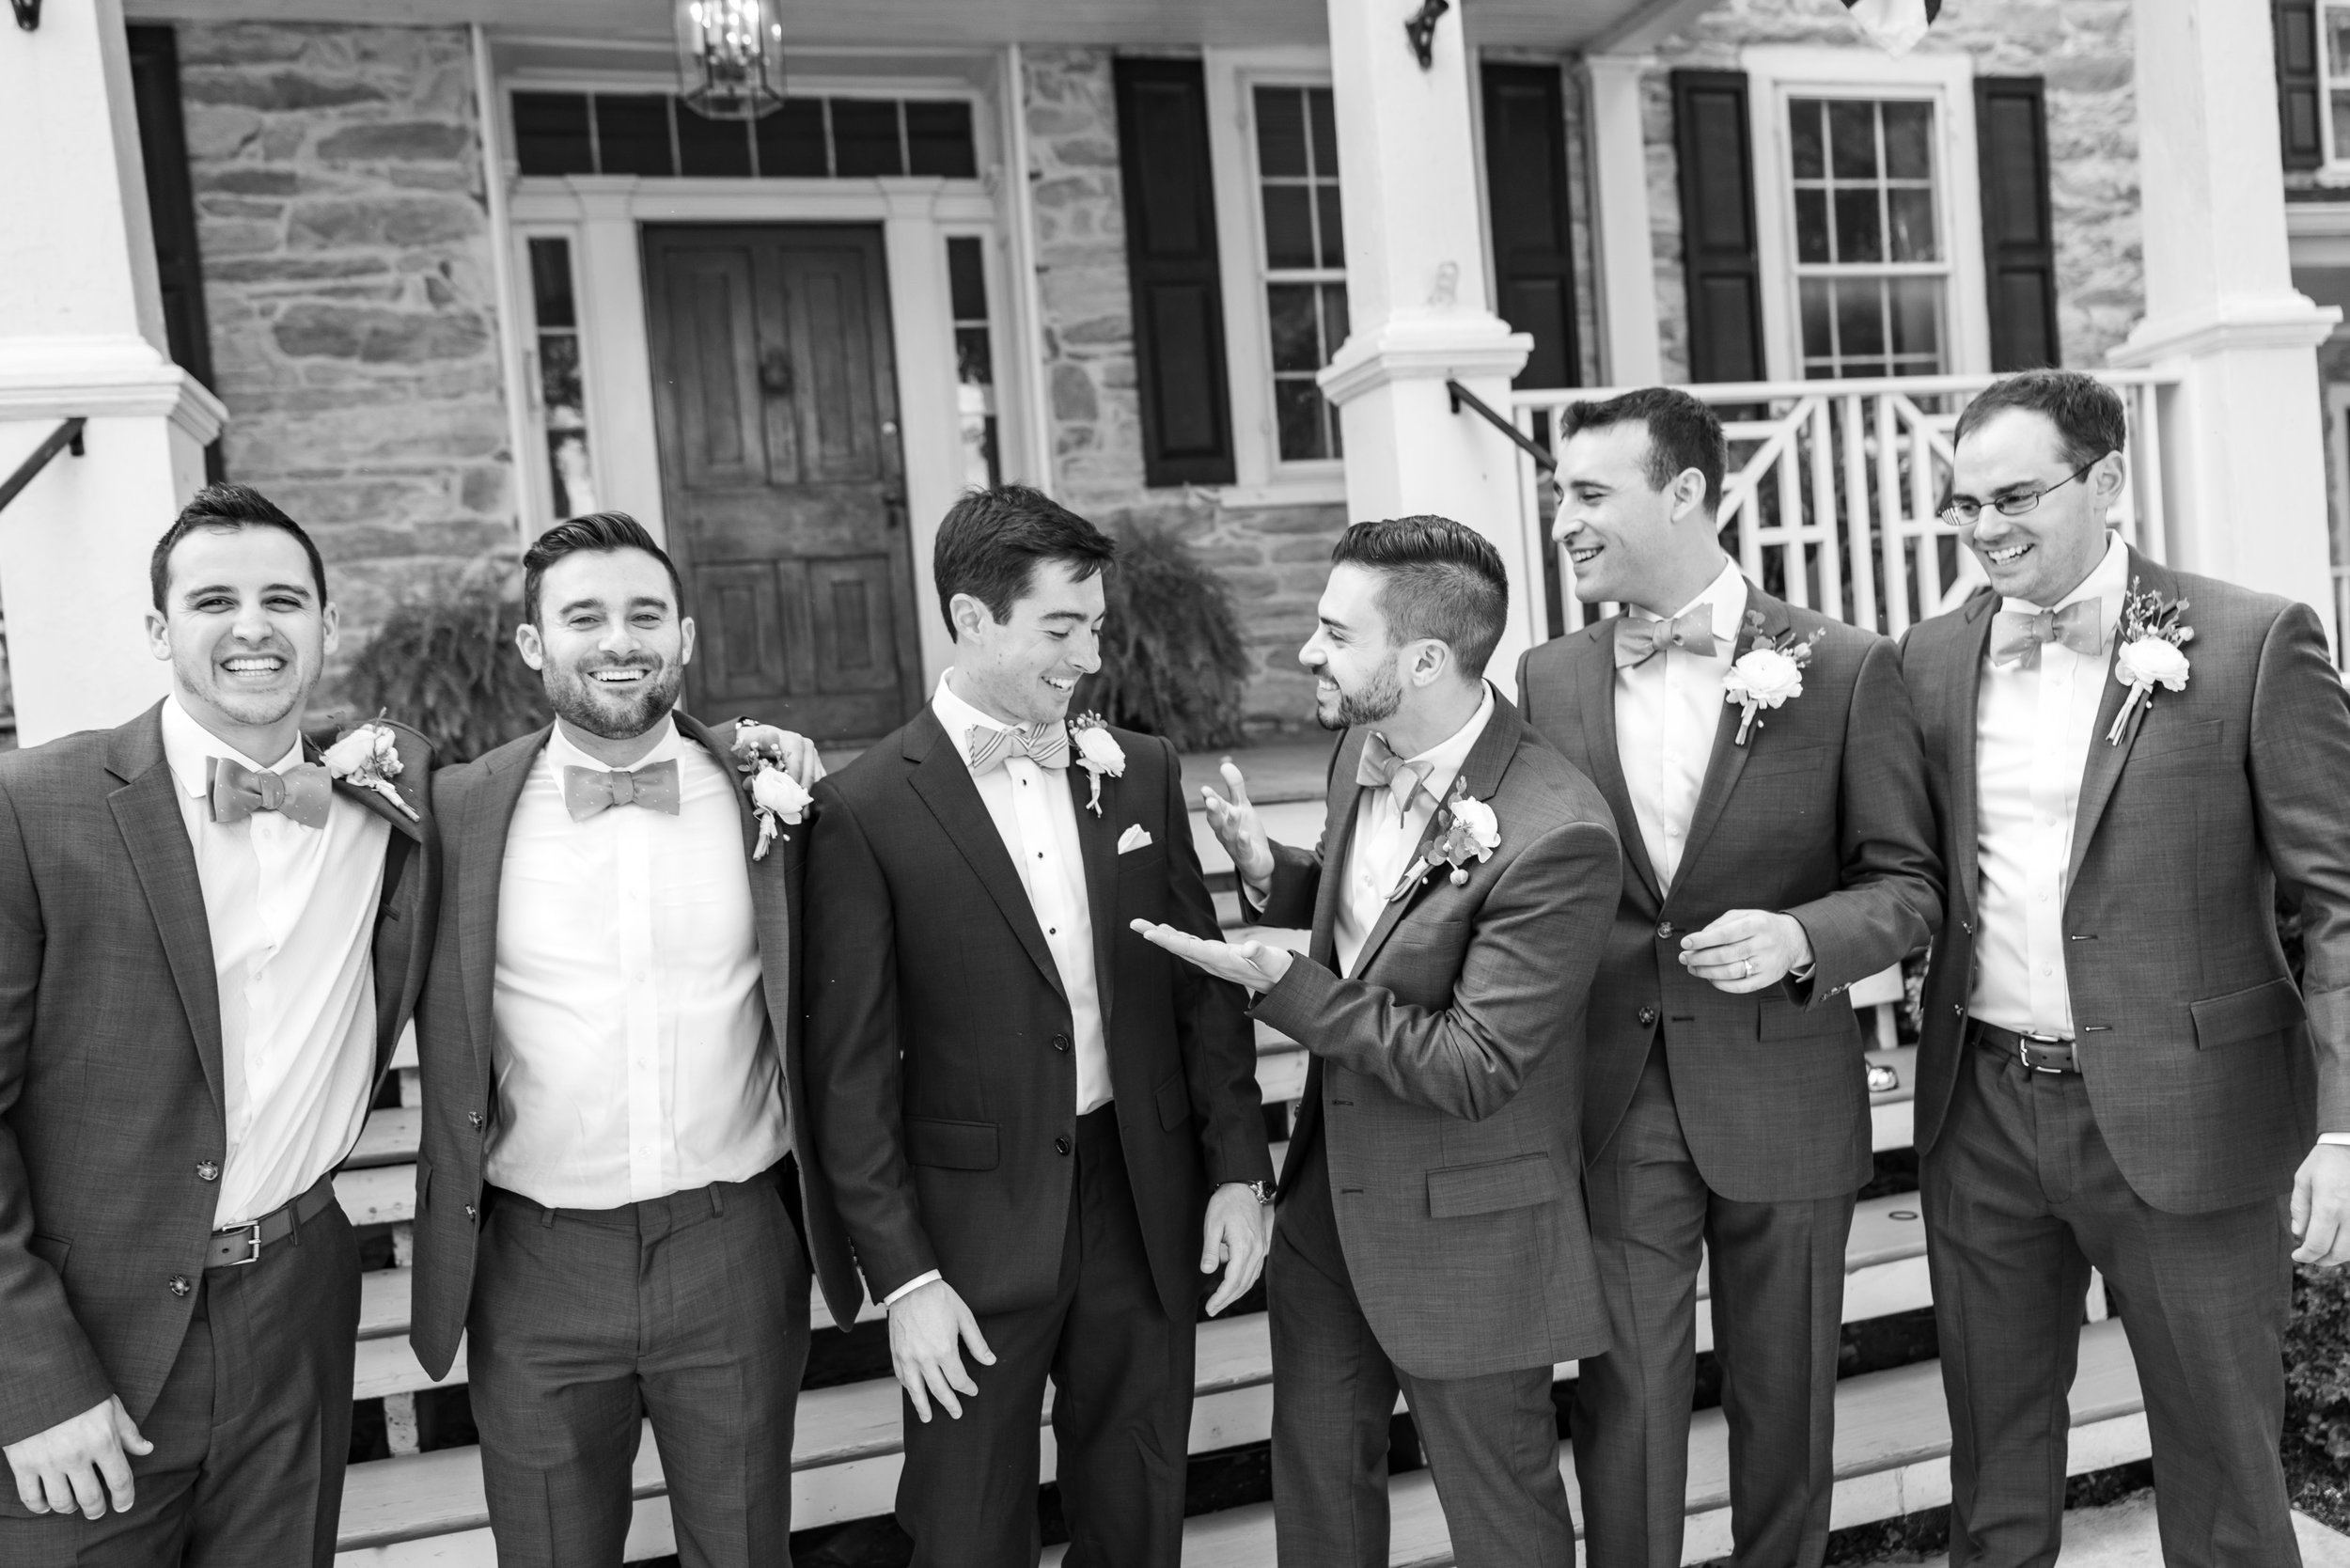 Groom and groomsmen wearing J Crew suits and Tie Bar bow ties at Springfield Manor Winery